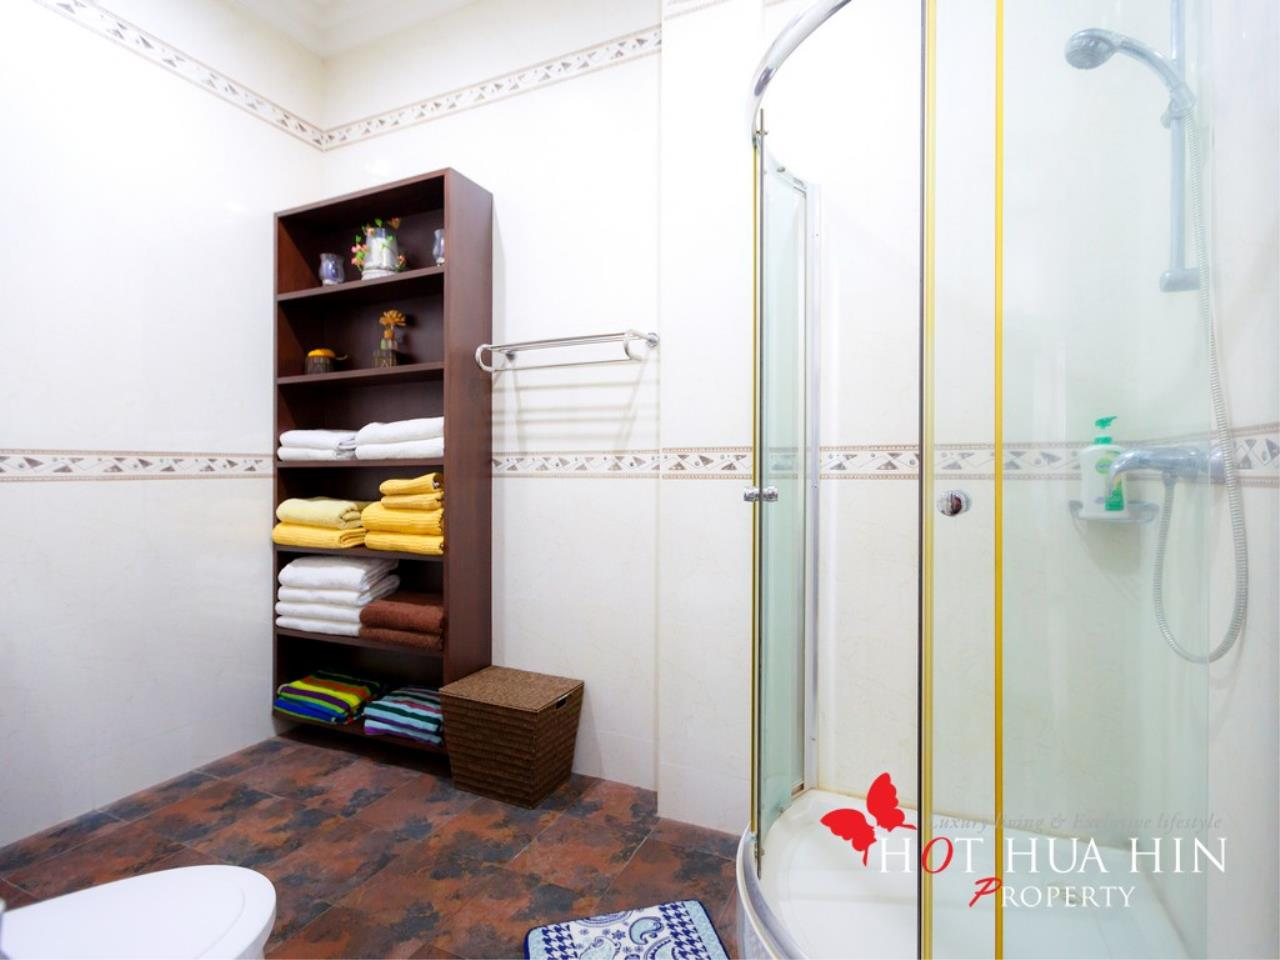 Hot Hua Hin Co. Ltd. Agency's Well Built Home With Stunning Gardens And Two Full Kitchens 20